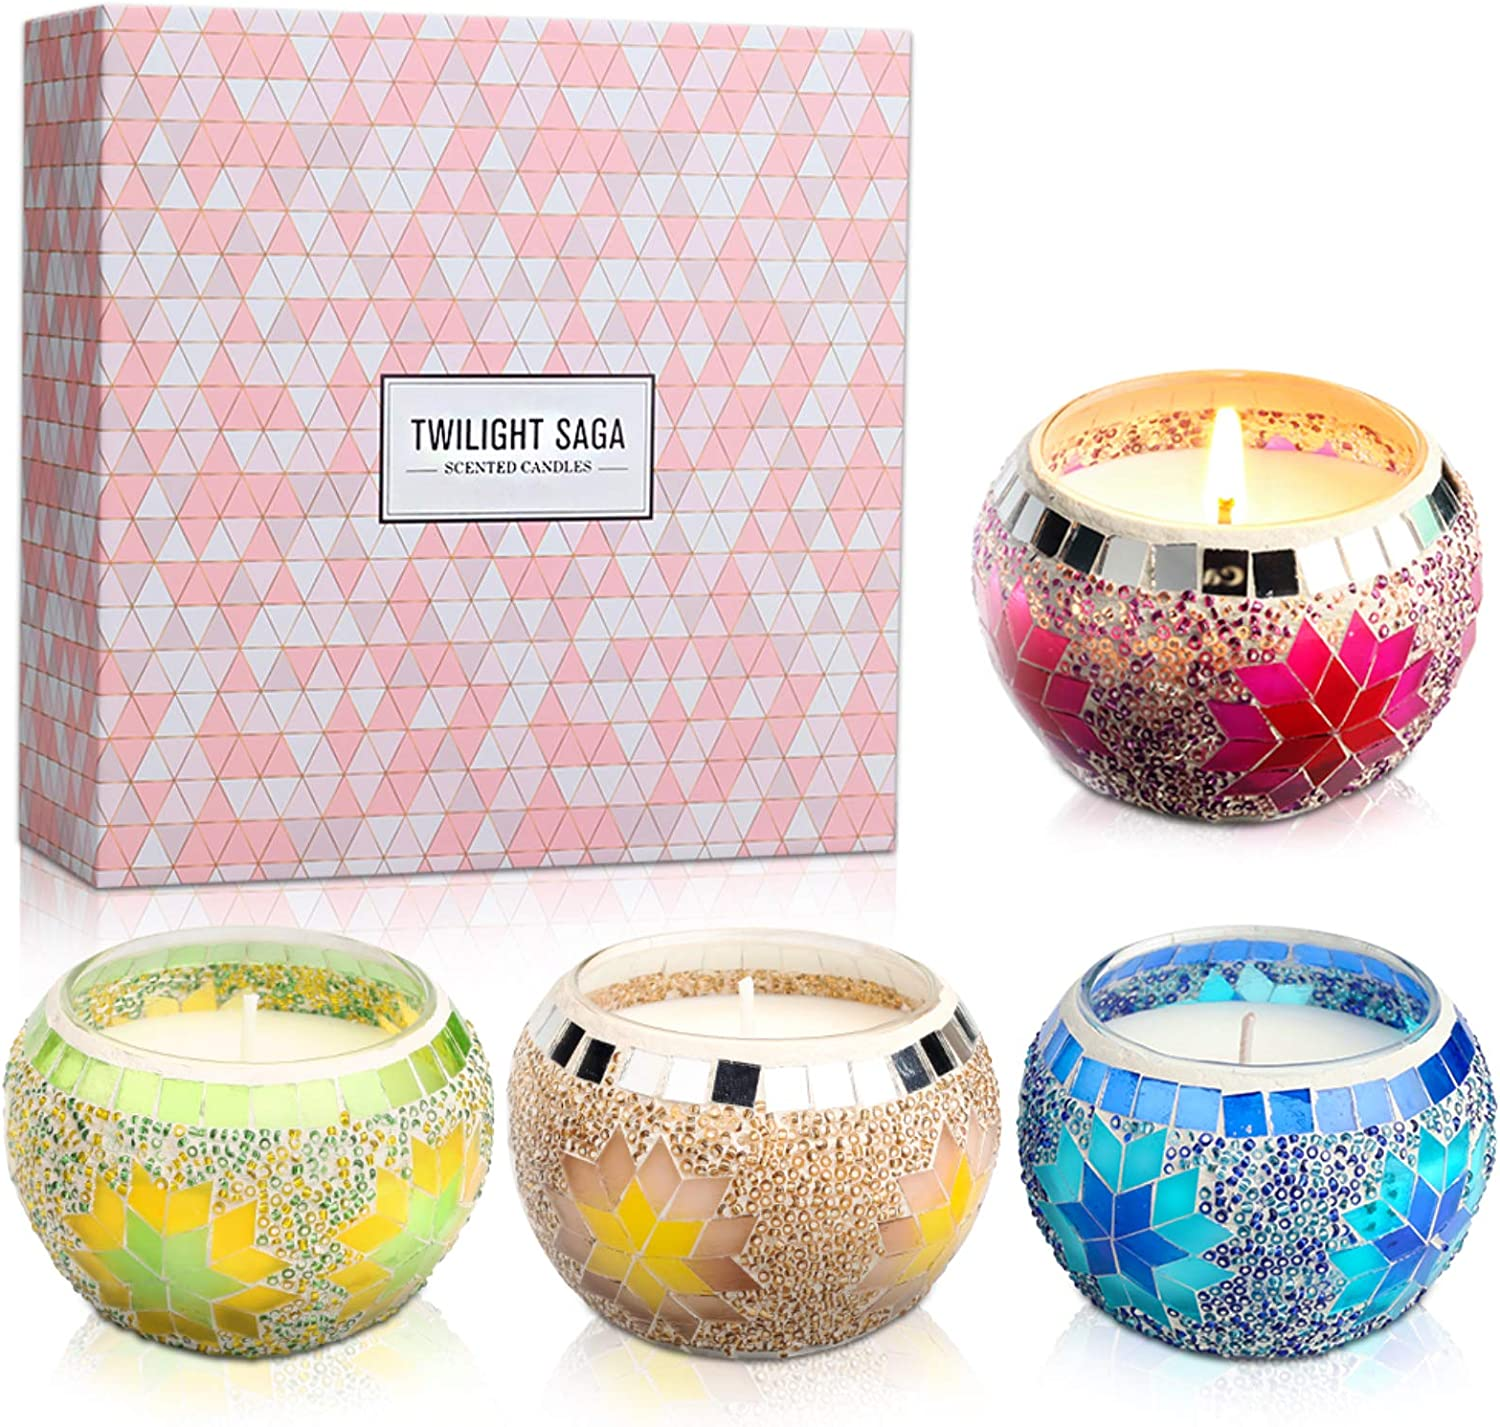 Luxury Scented Candles Gift Set, Handmade Mosaic Design Soy Wax 4.4 oz Lavender Jar Candles for Aromatherapy Stress Relax, Home Decor, Yoga Meditation Reiki, Women Gift Home Decoration